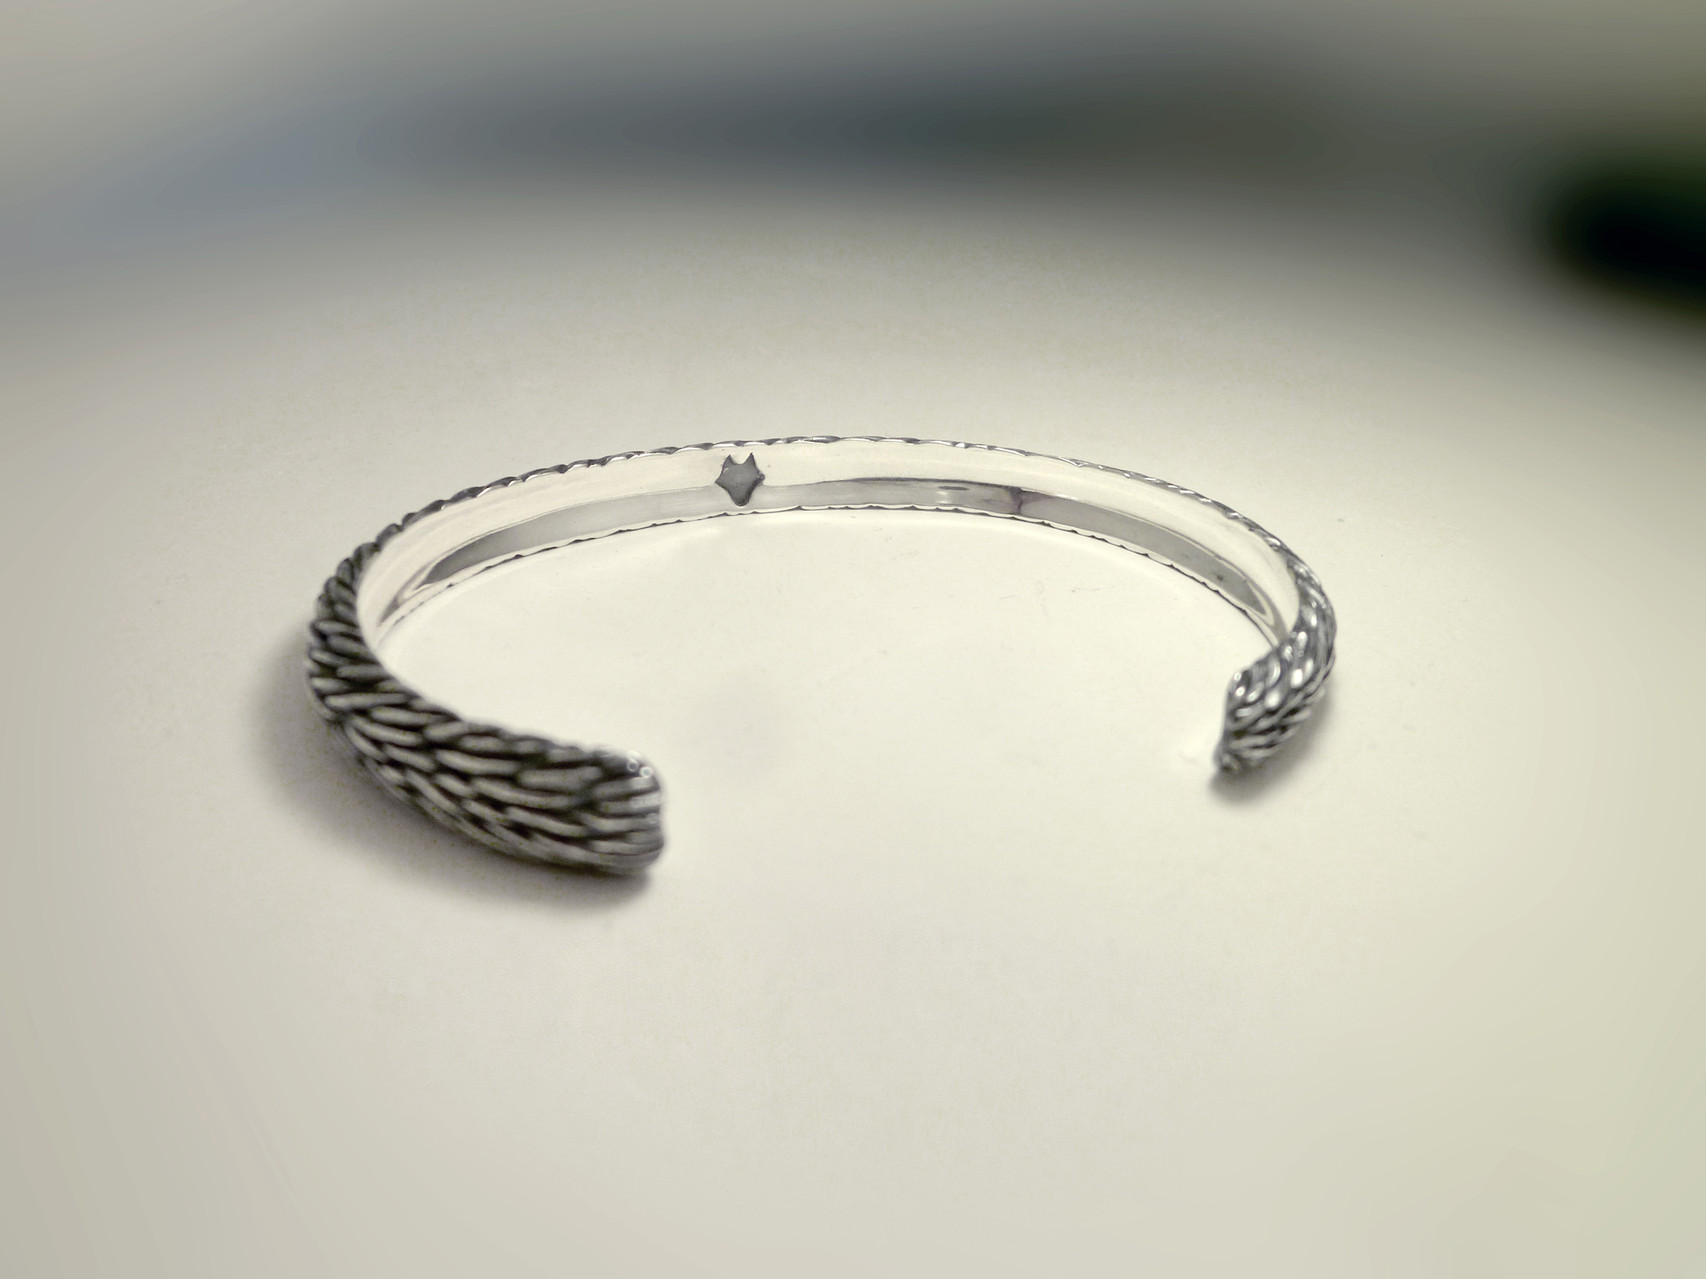 Wolf-fur textured Bangle